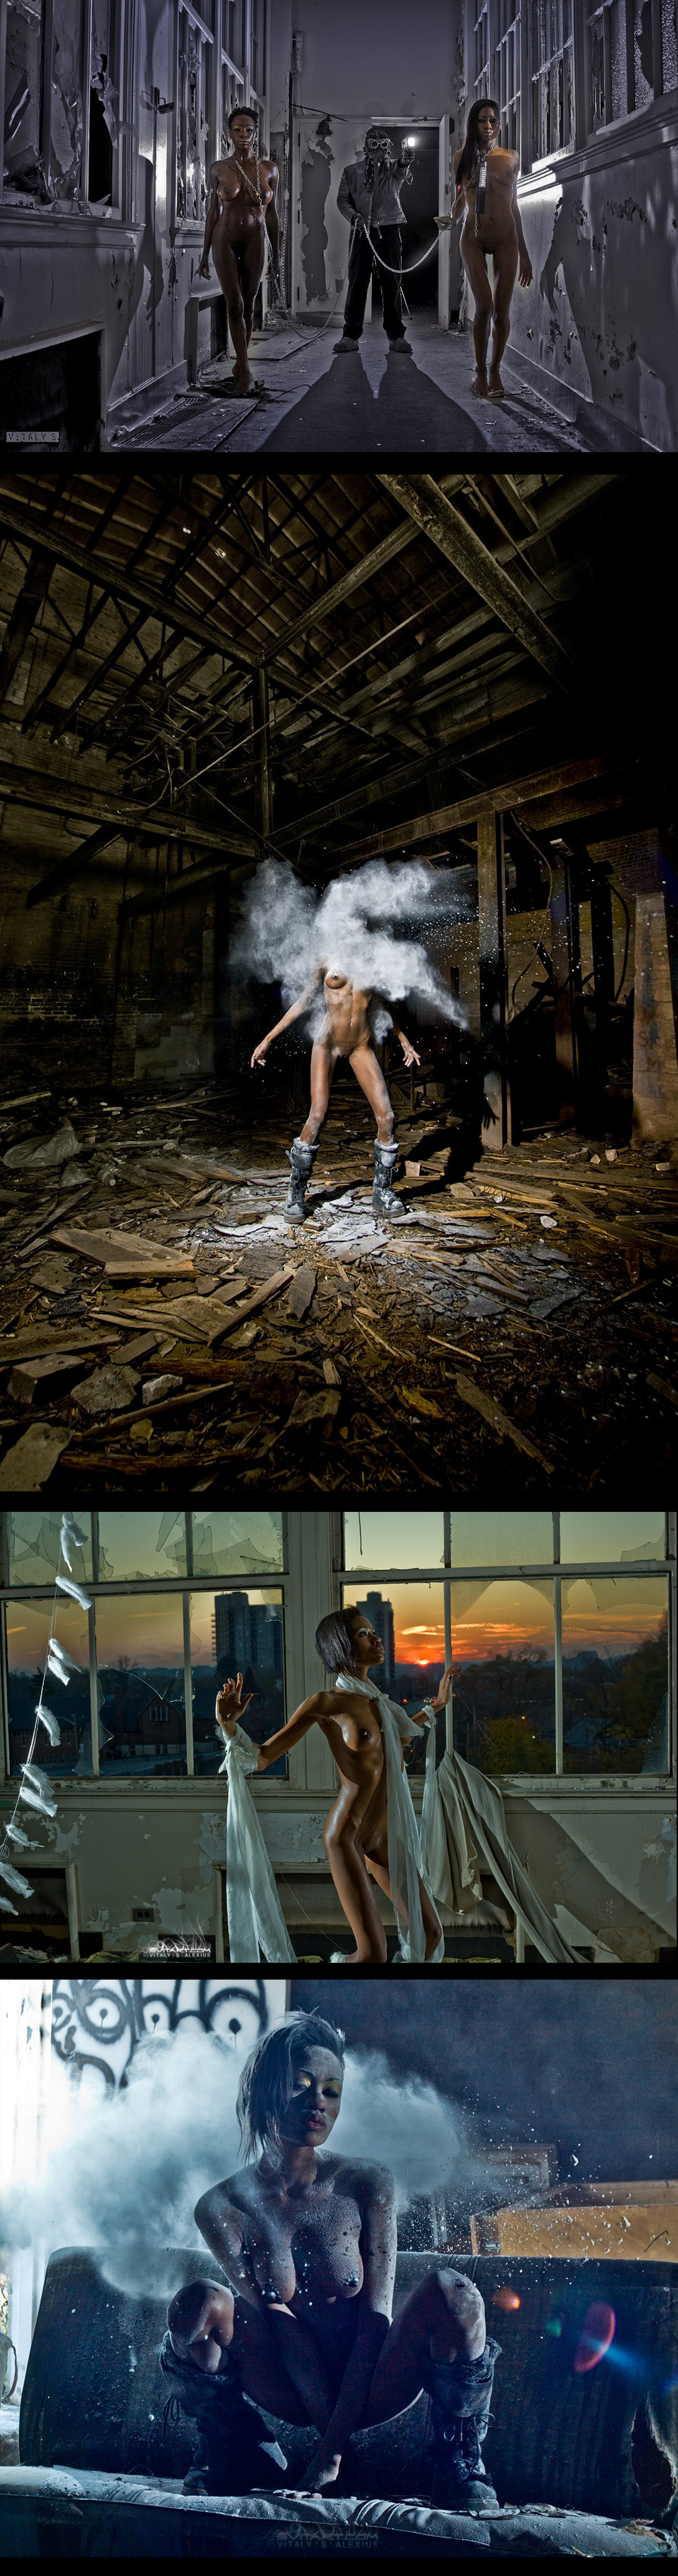 Nudes in Abandoned Places romanticallyapocalyptic.com